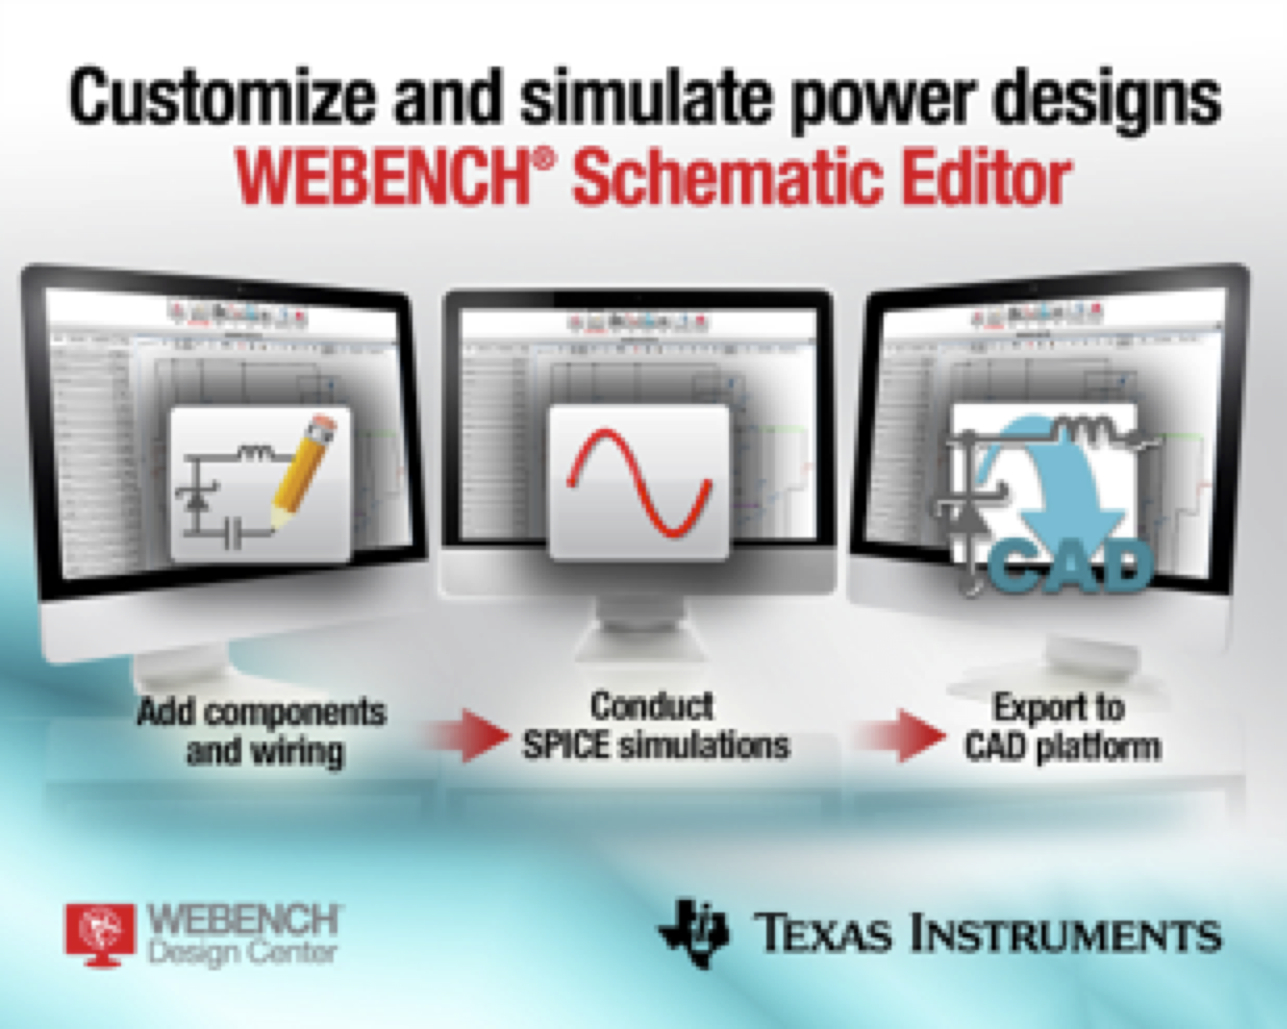 TI's WEBENCH Schematic Editor enables rapid customization and simulation of analog designs